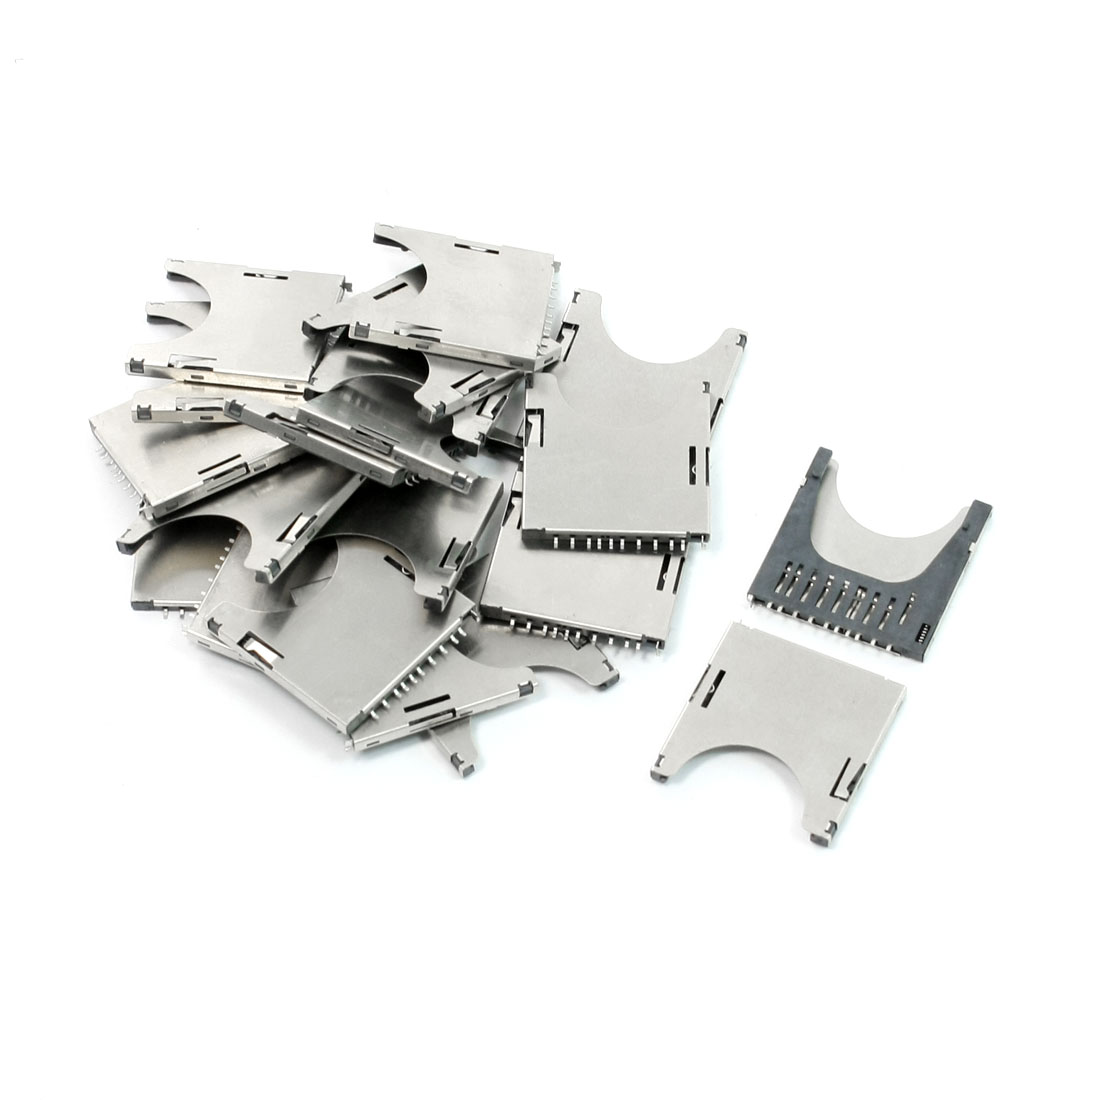 10Pcs Spring Loaded Stainless Steel SD Card Sockets Slots 29mm Long